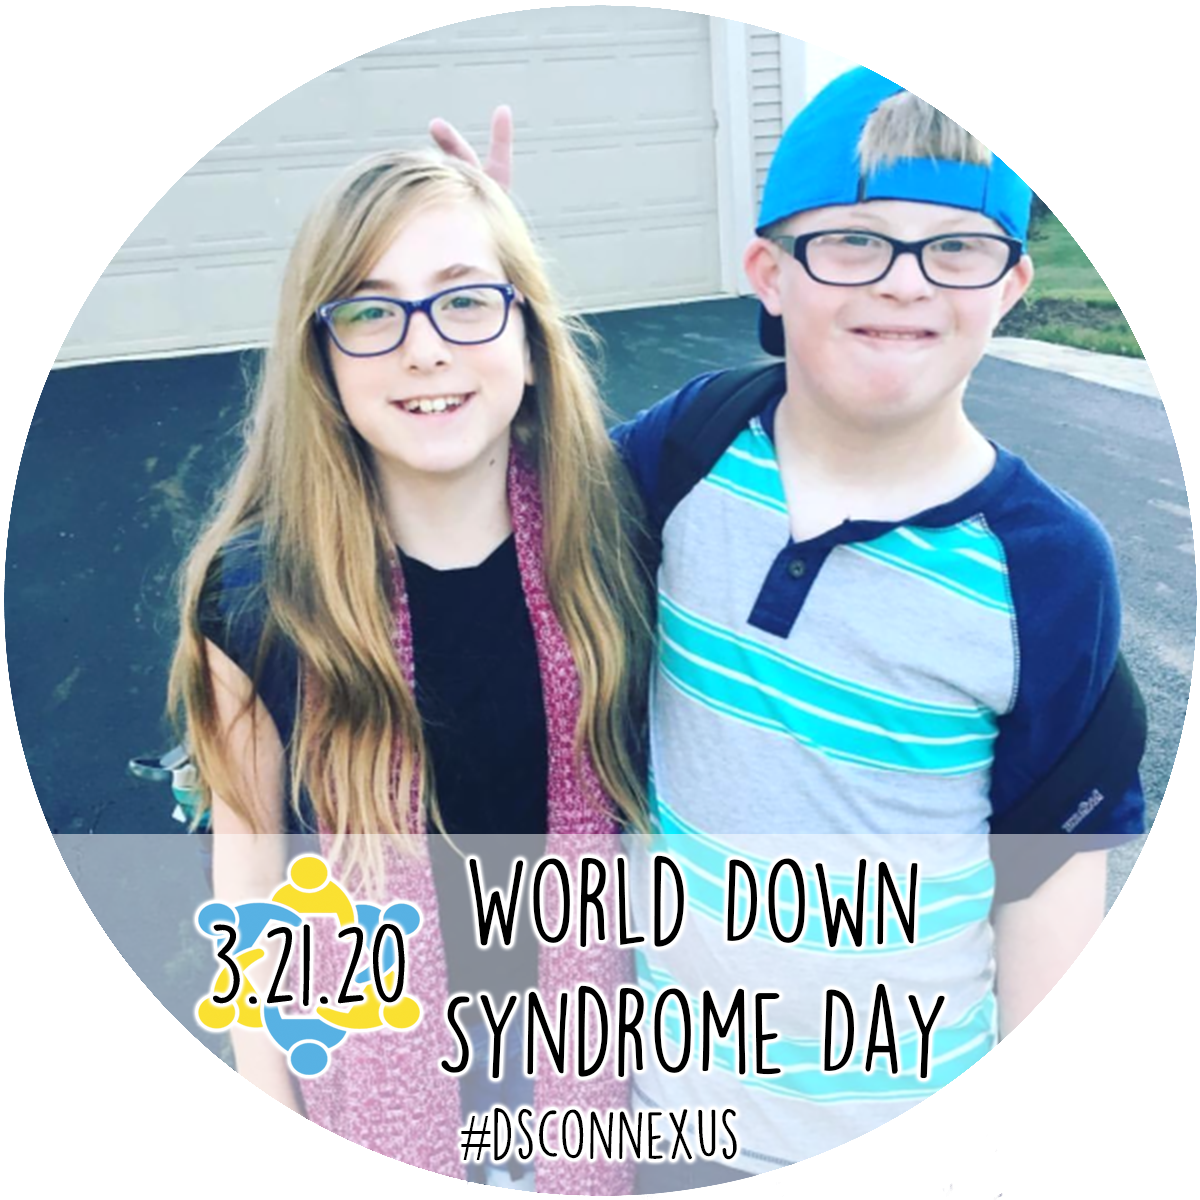 dsconnex Facebook frame for World Down Syndrome Day